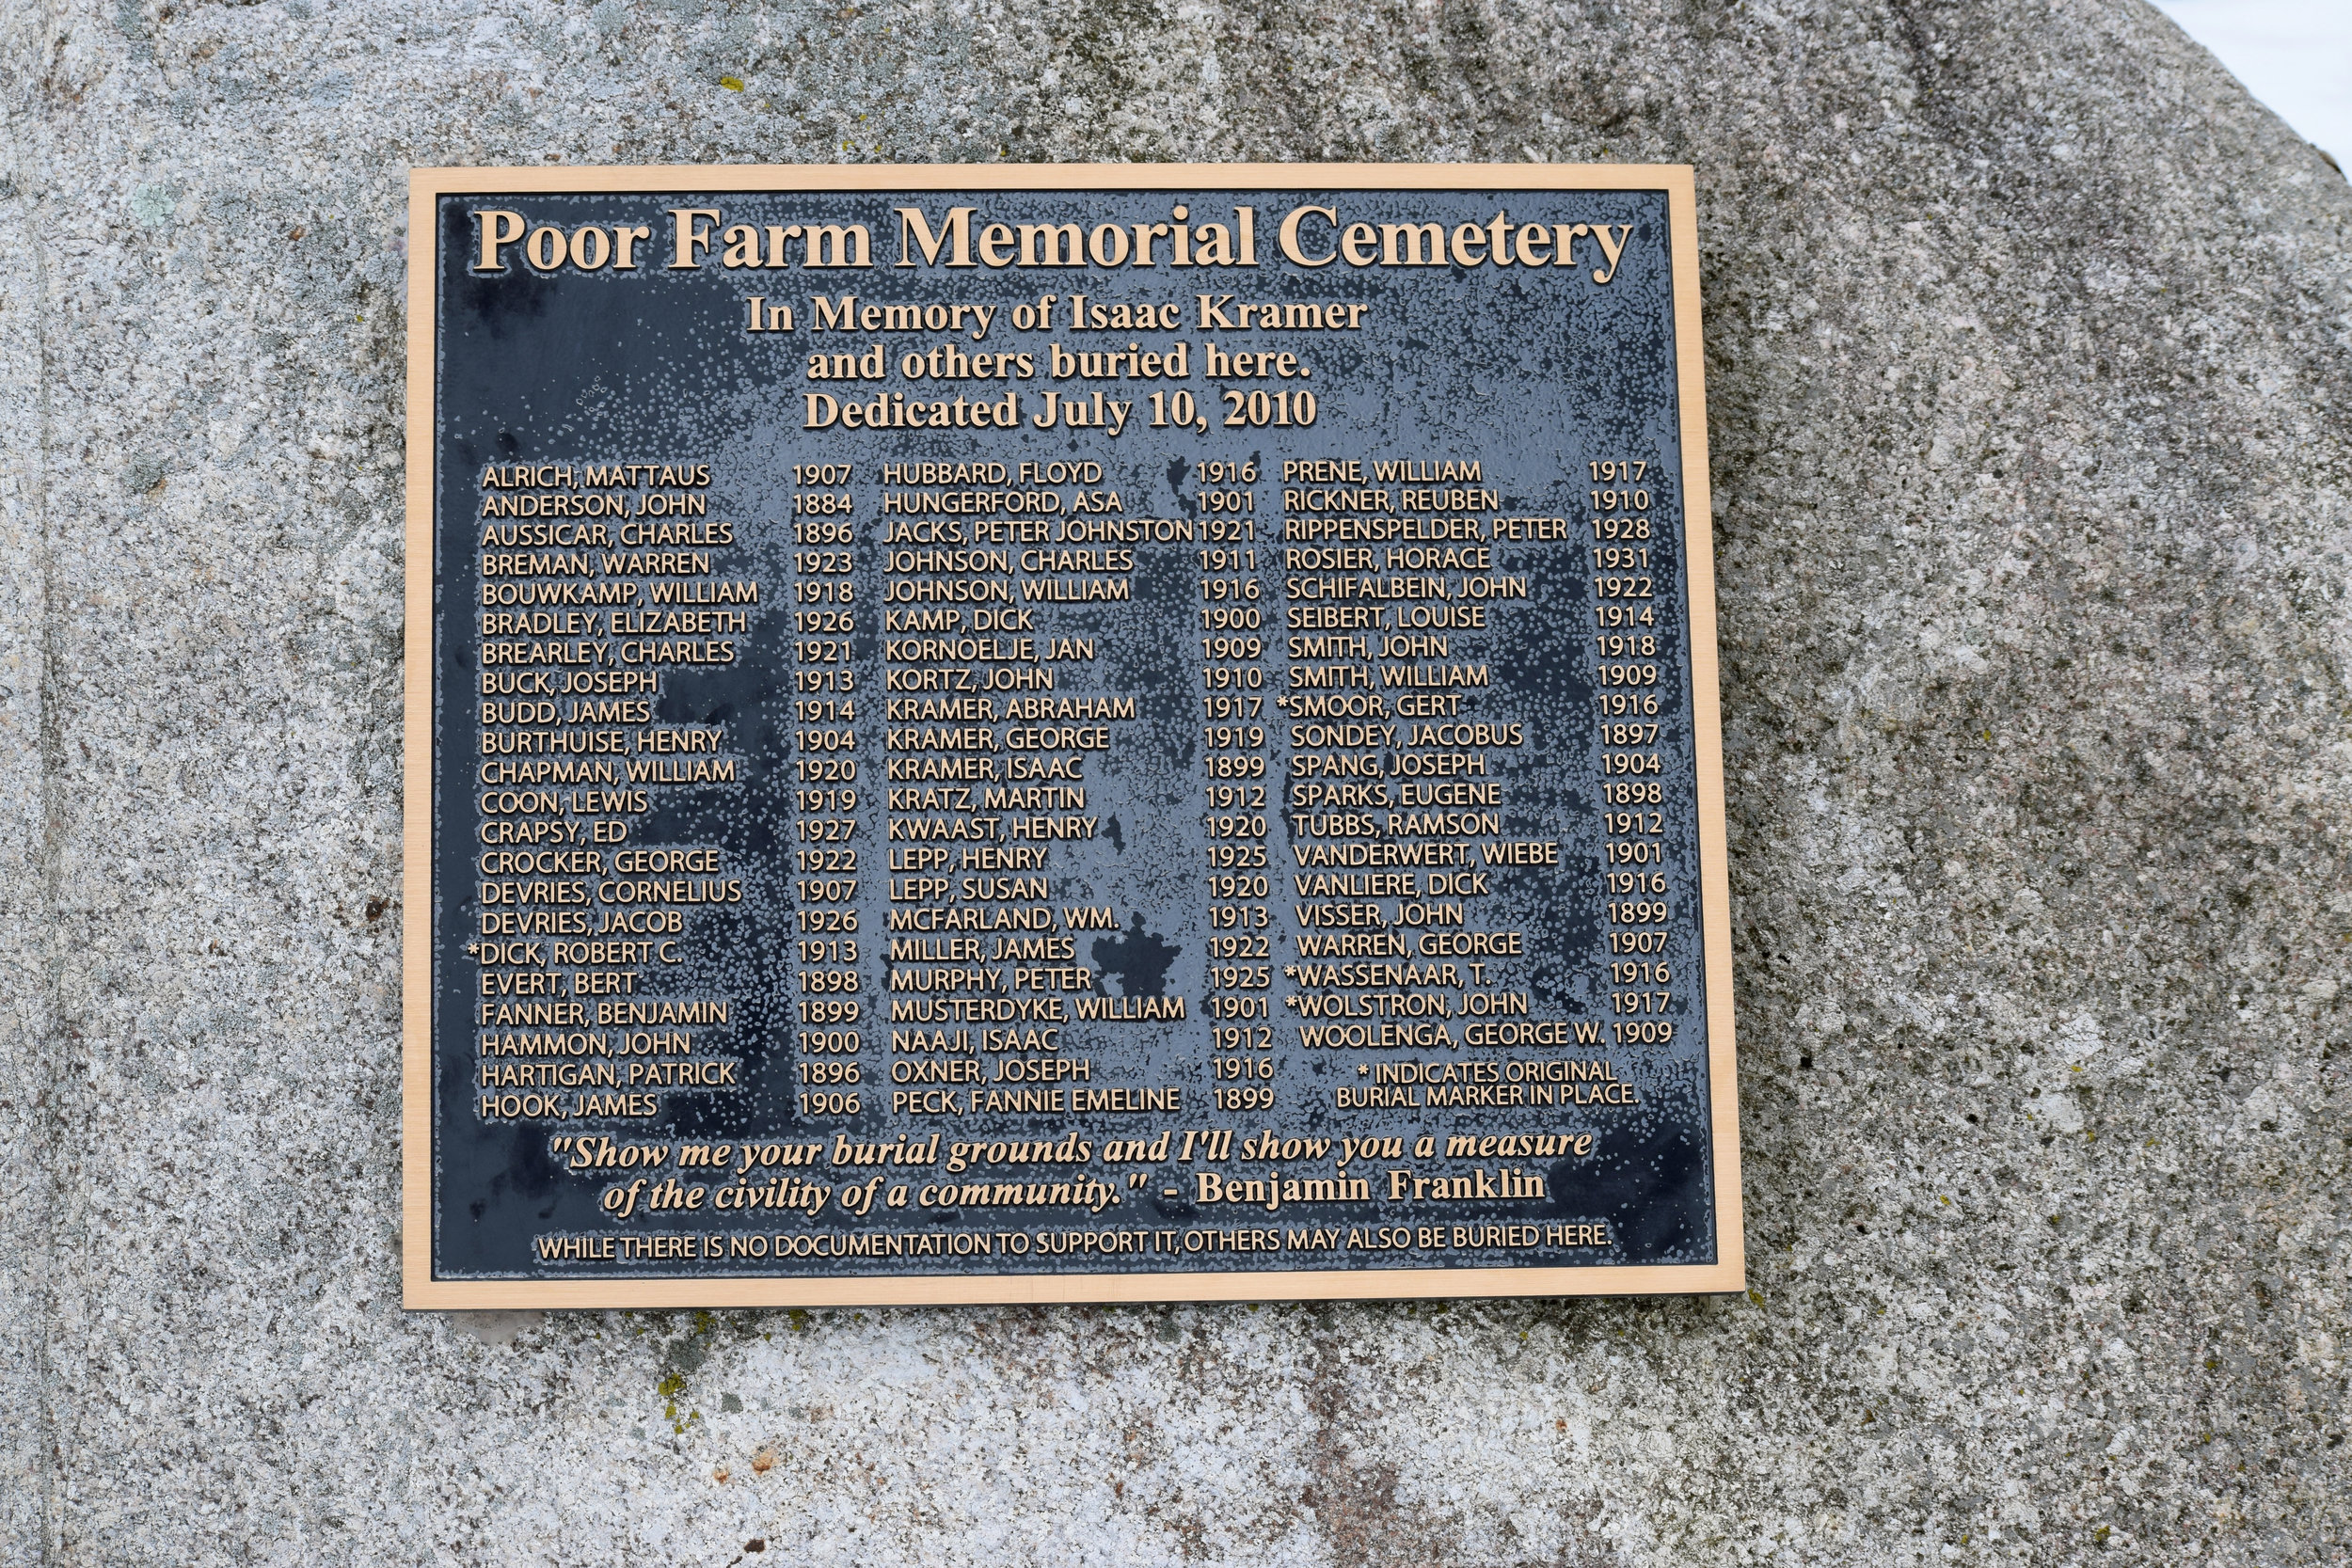 Sign at the Poor Farm Memorial Cemetery with a list of those buried in the cemetery.